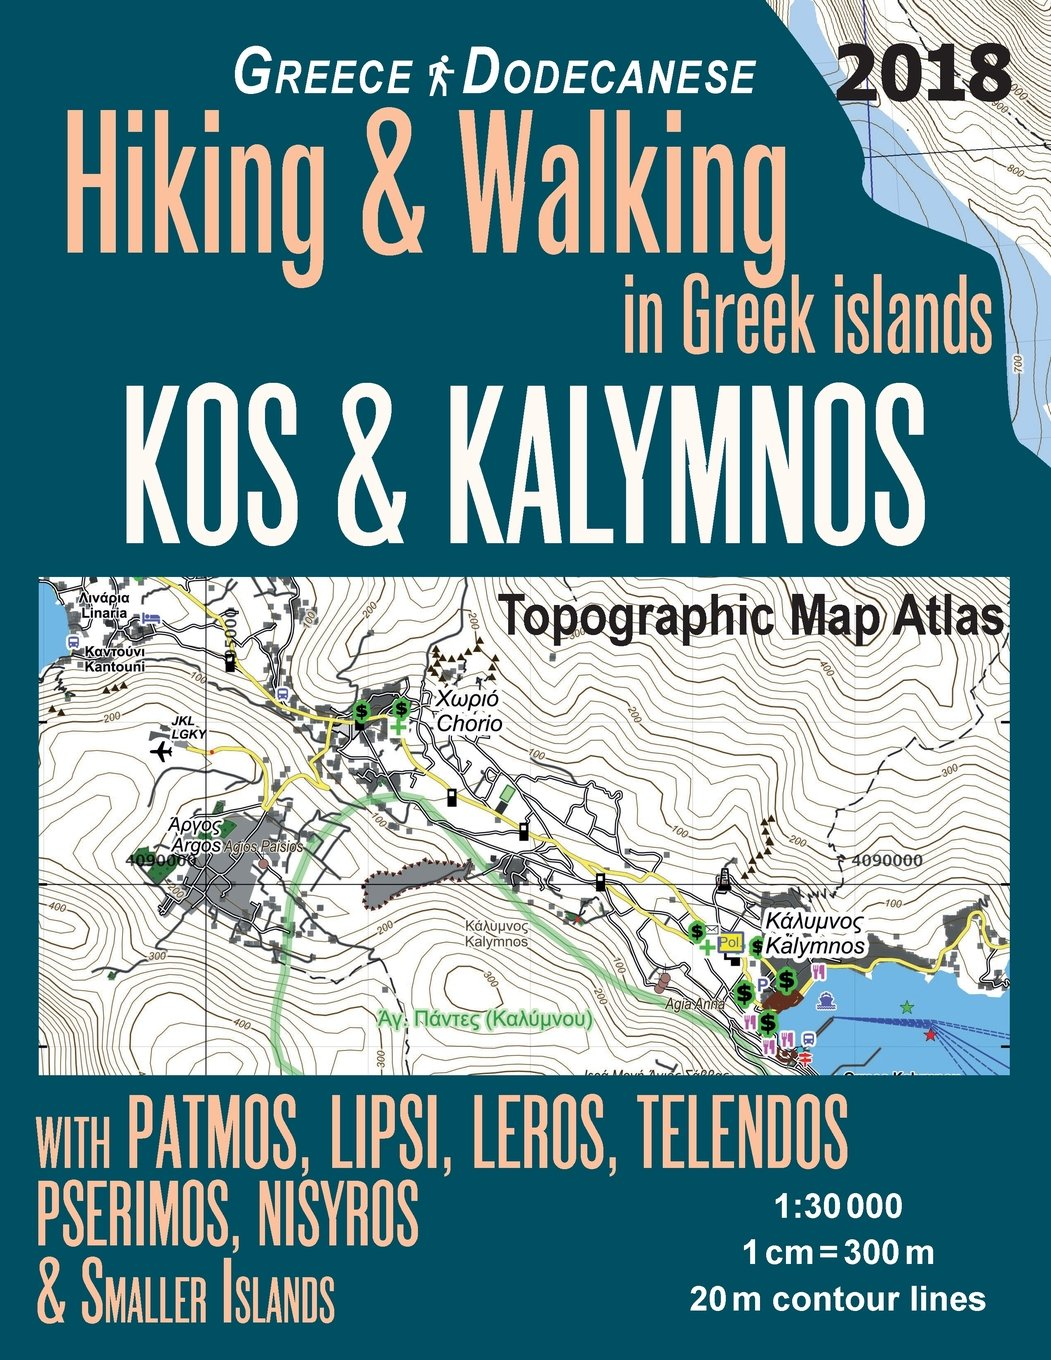 Buy Kos Kalymnos Topographic Map Atlas 1 30000 Greece Dodecanese